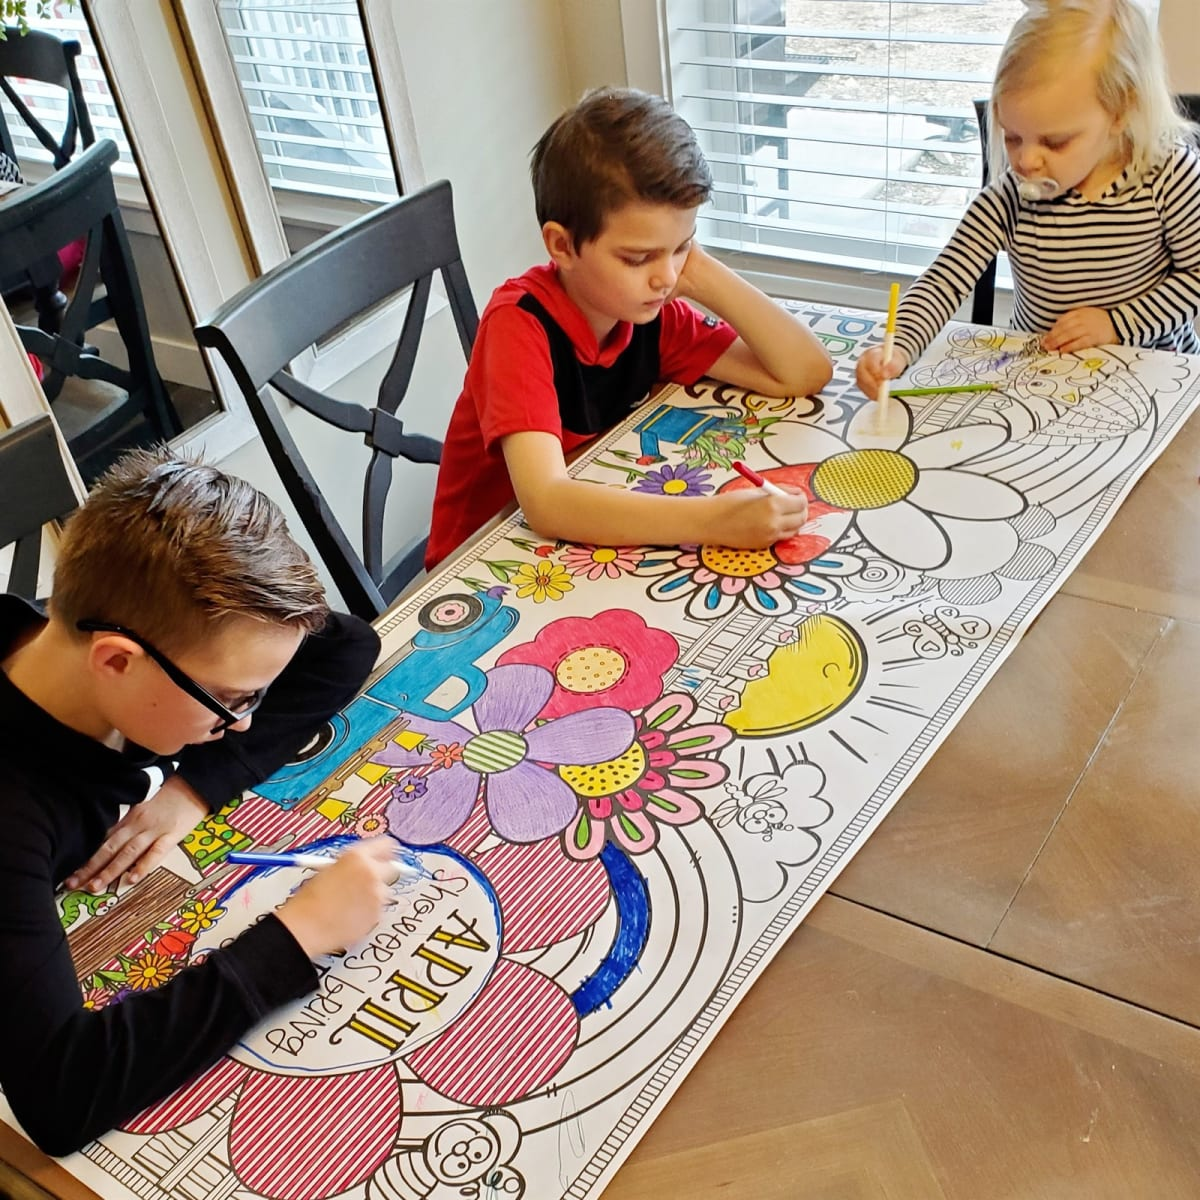 Giant Tabletop Coloring Sheet